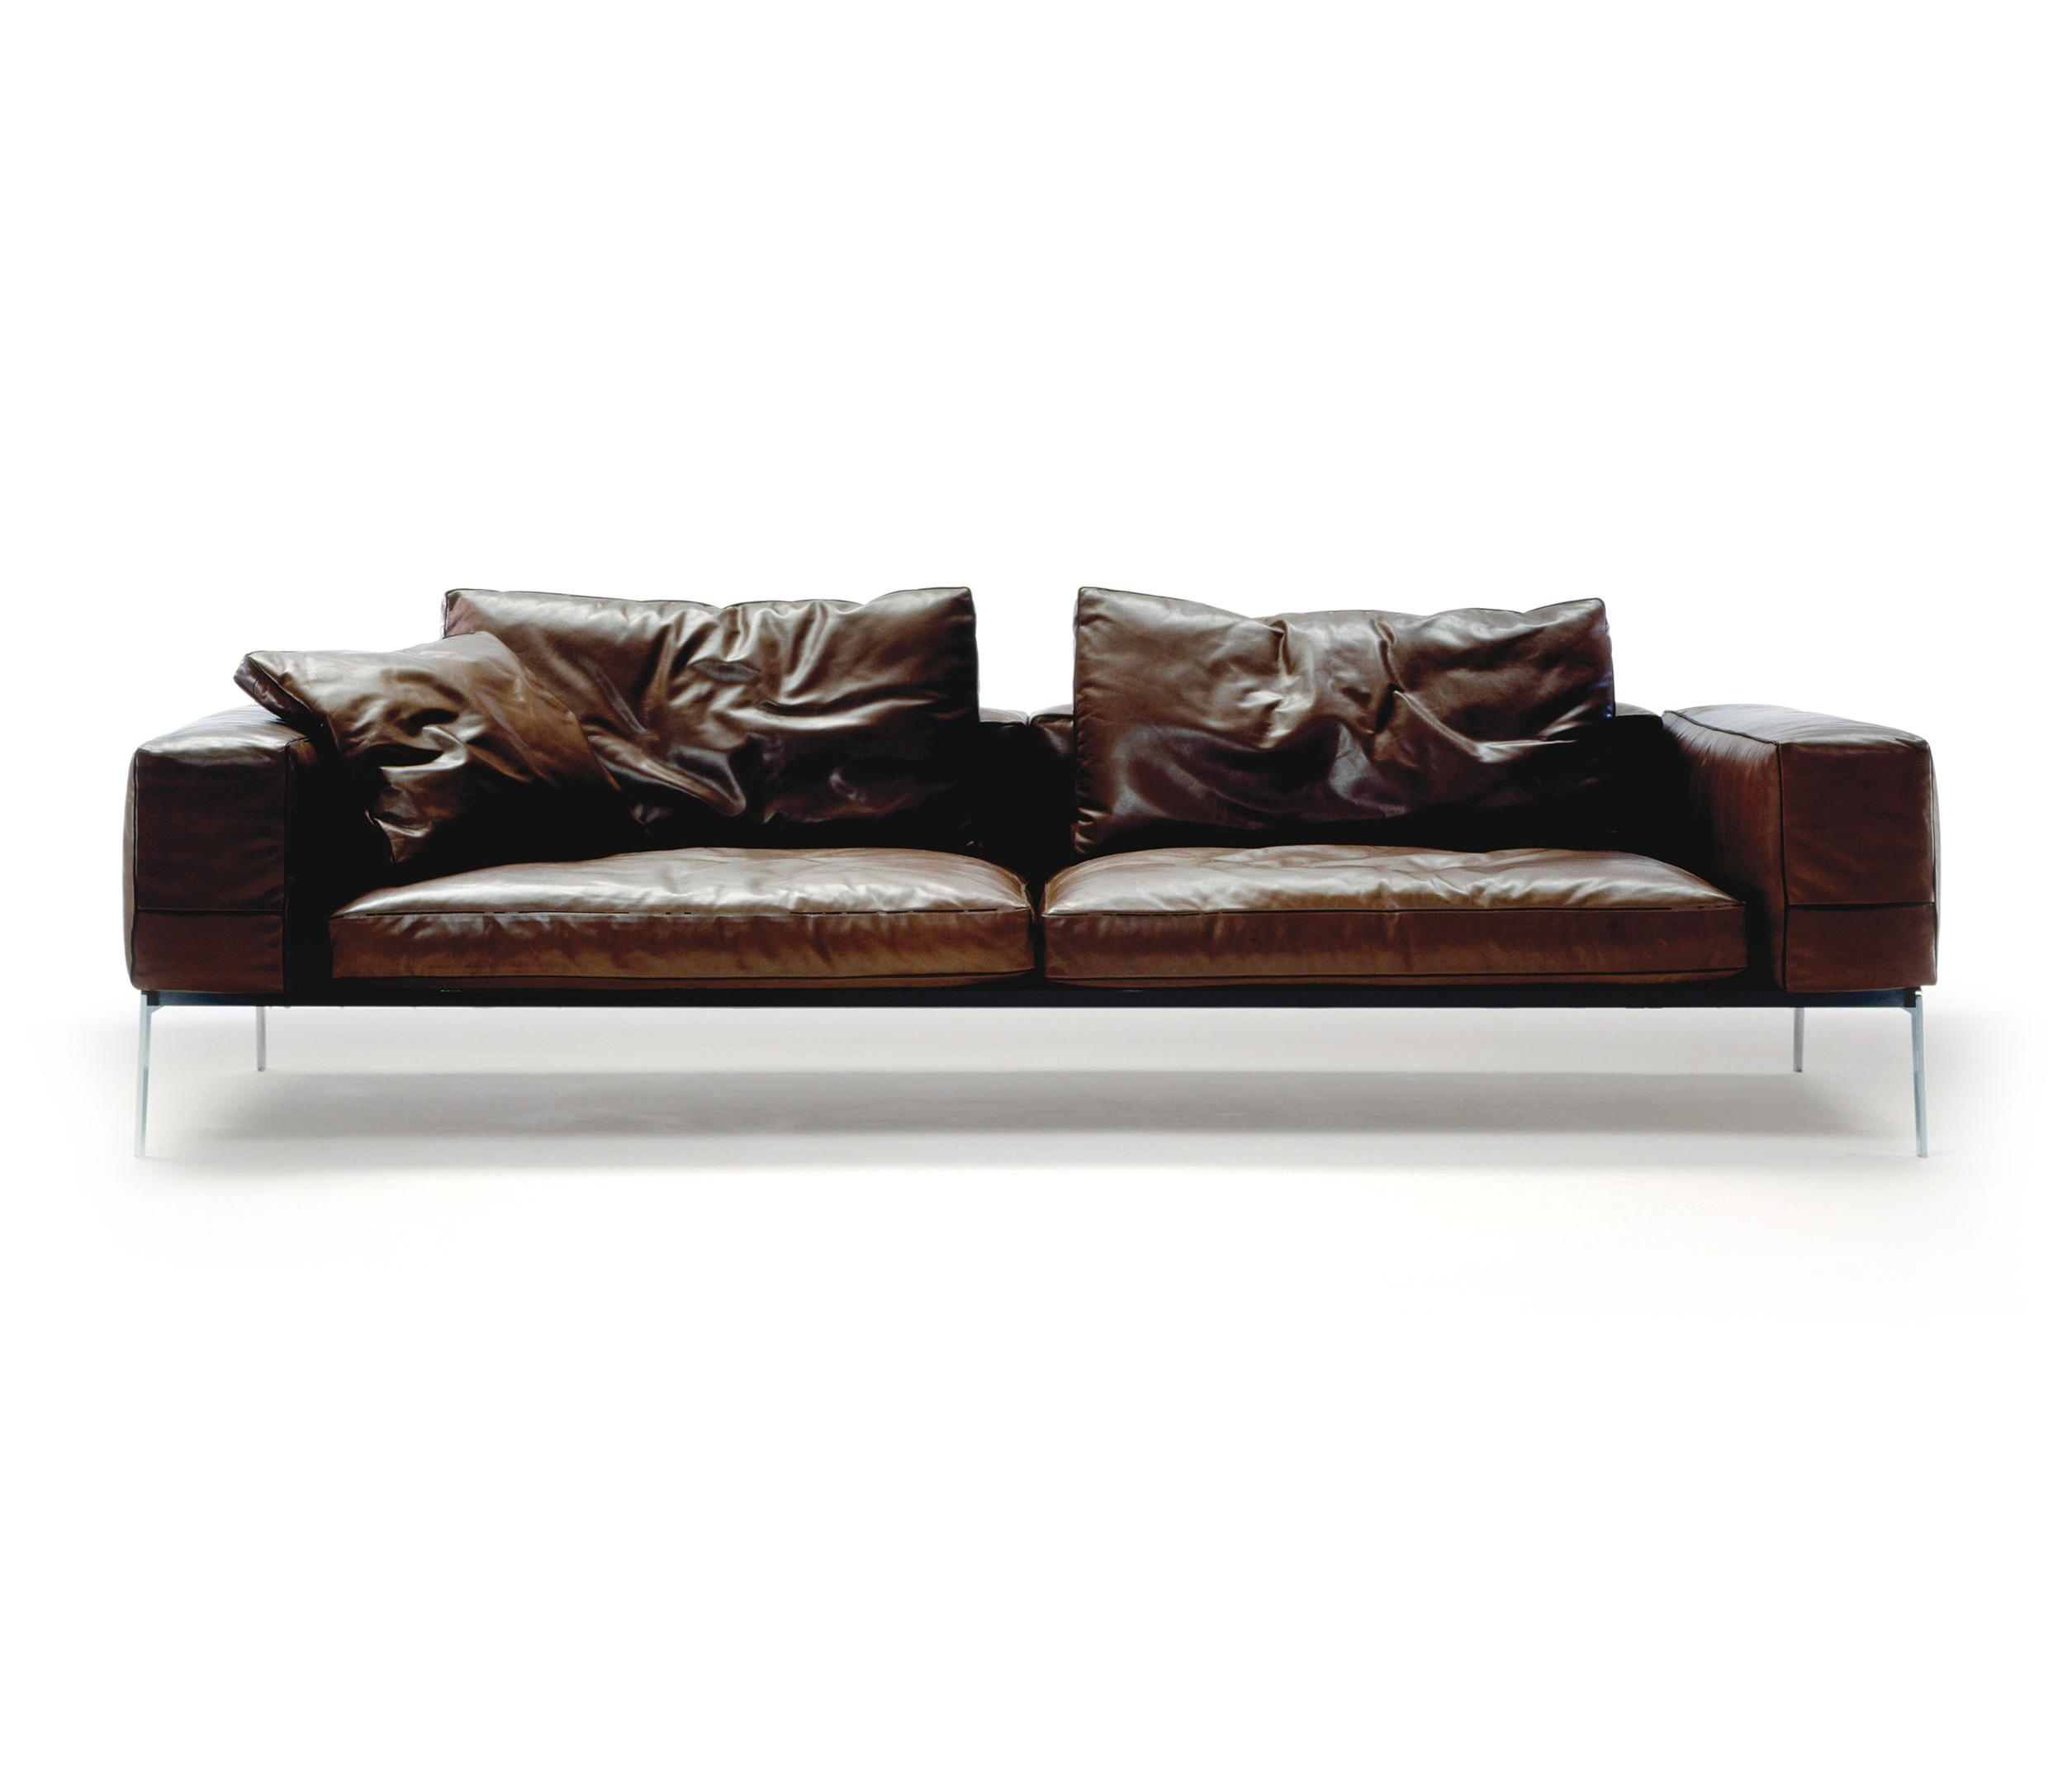 Lifesteel – Lounge Sofas From Flexform | Architonic With Regard To Flexform Sofas (View 9 of 20)